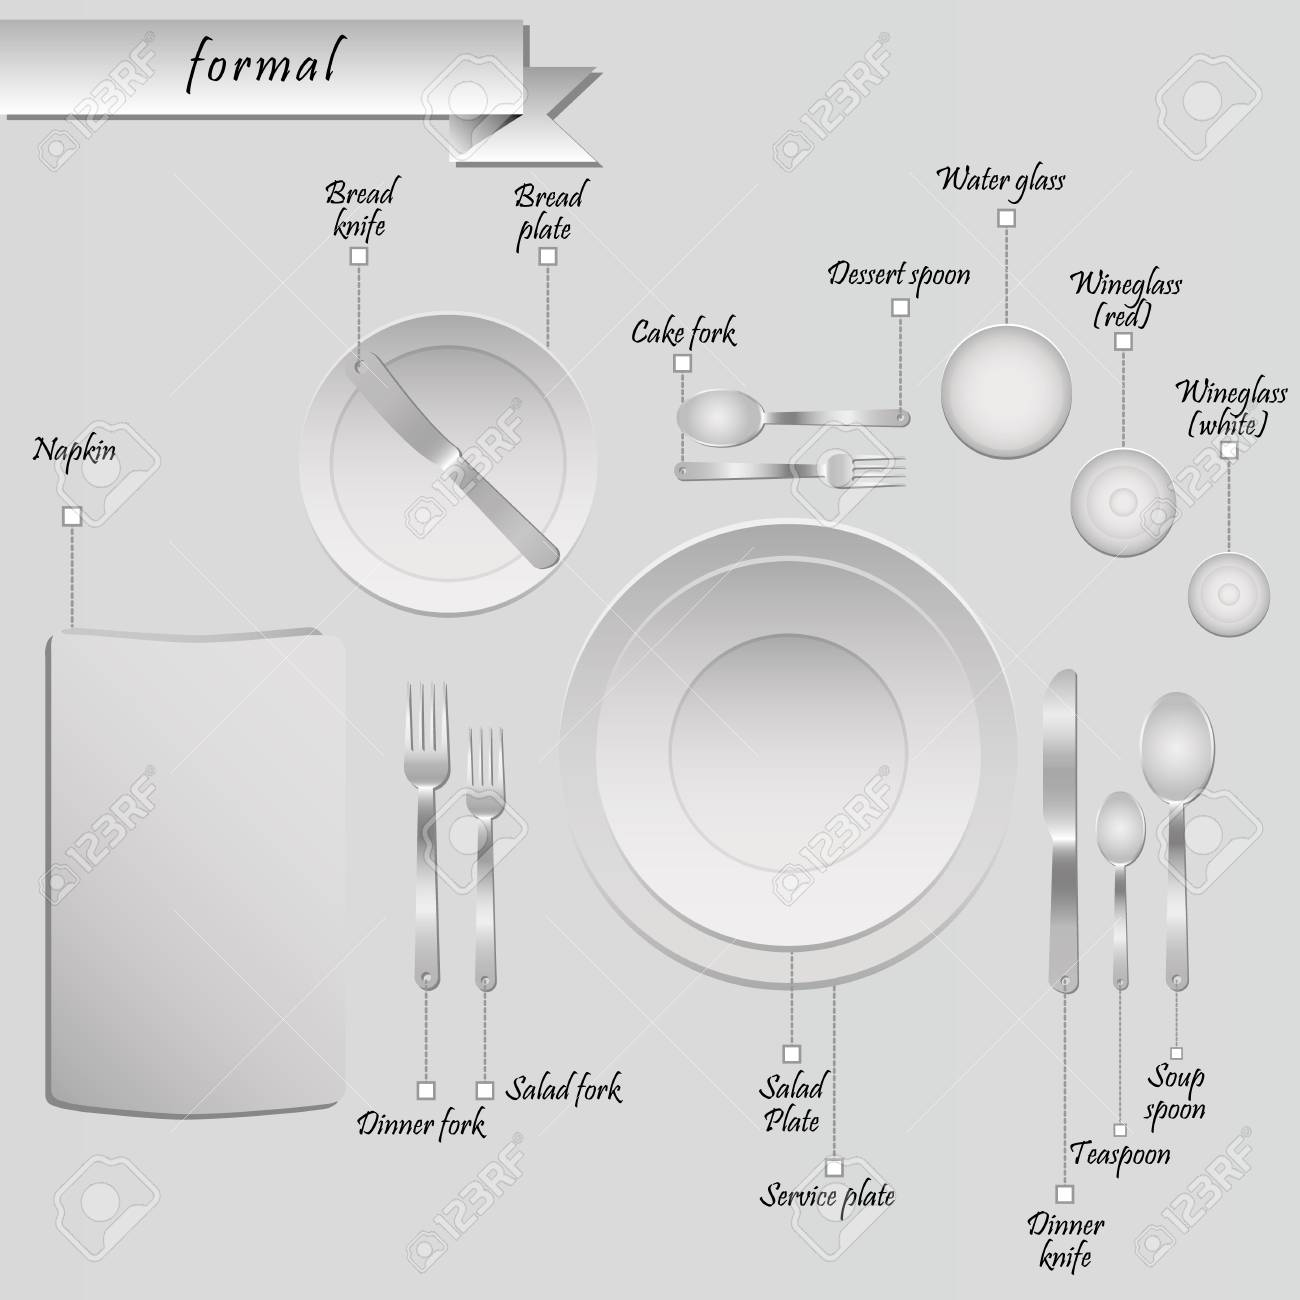 Formal table setting with labels vector illustration Stock Vector - 98713362  sc 1 st  123RF.com & Formal Table Setting With Labels Vector Illustration Royalty Free ...